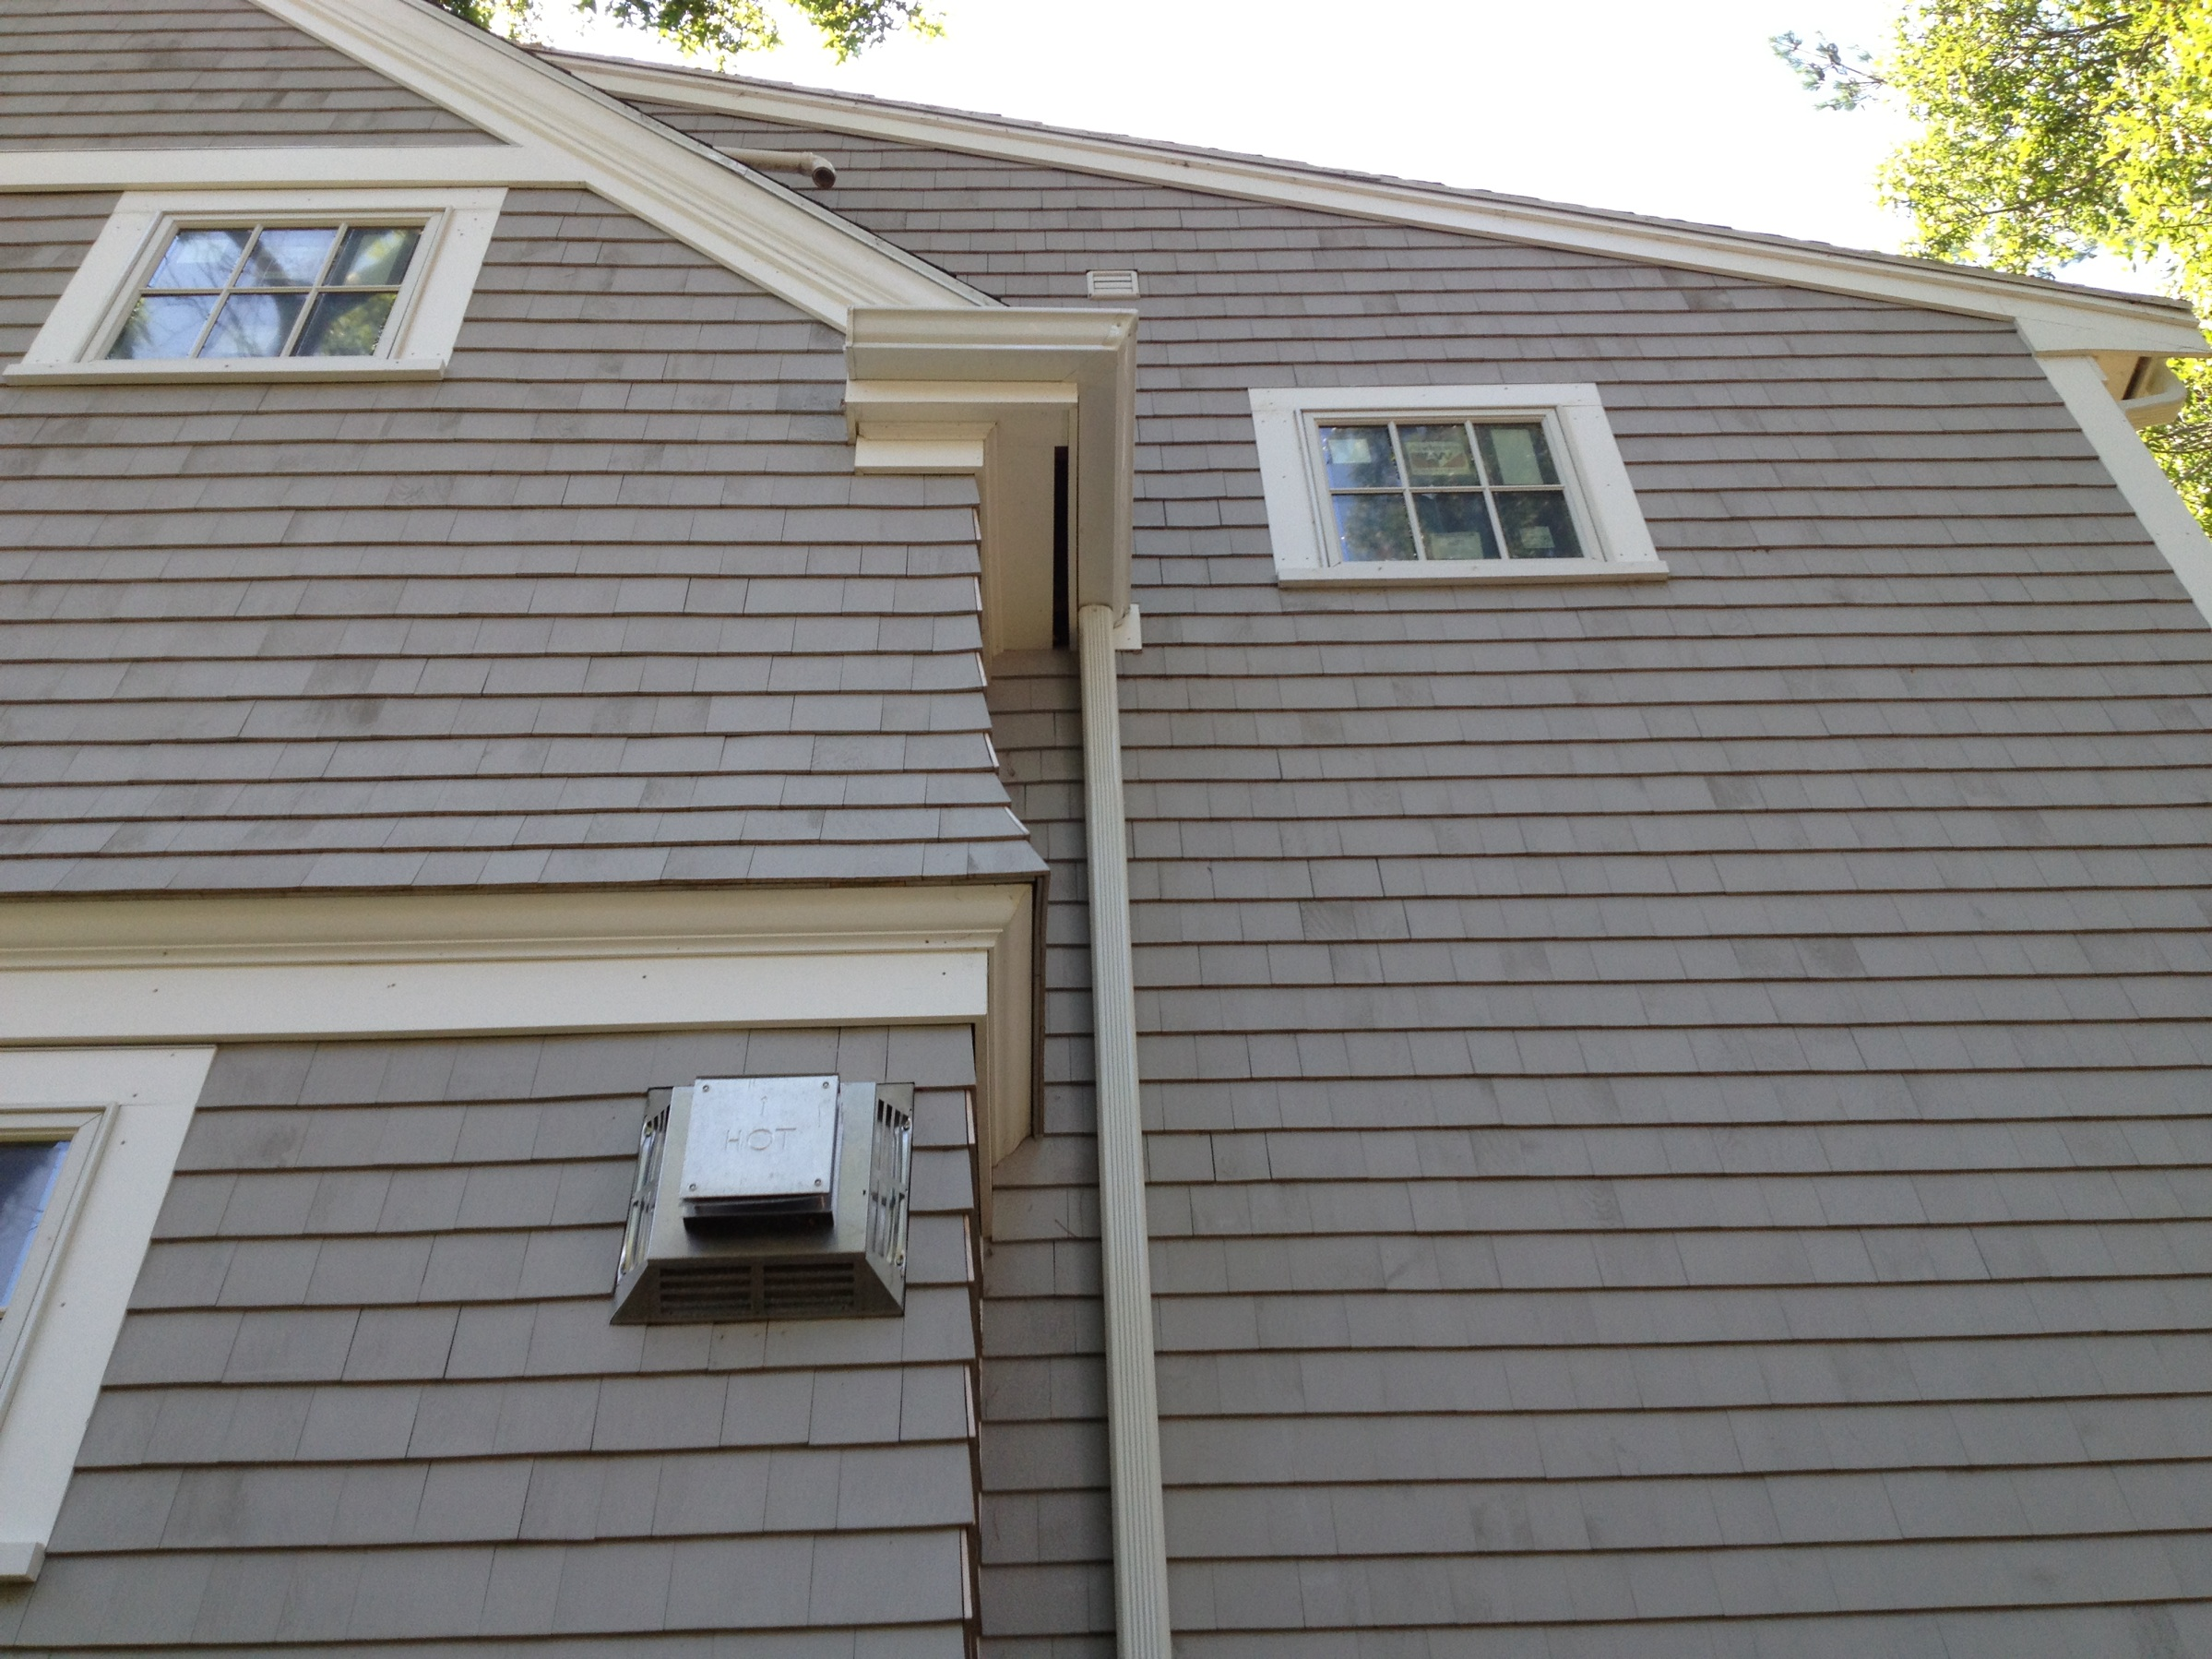 Aluminum gutter gutter pro on the job in massachusetts for New gutters